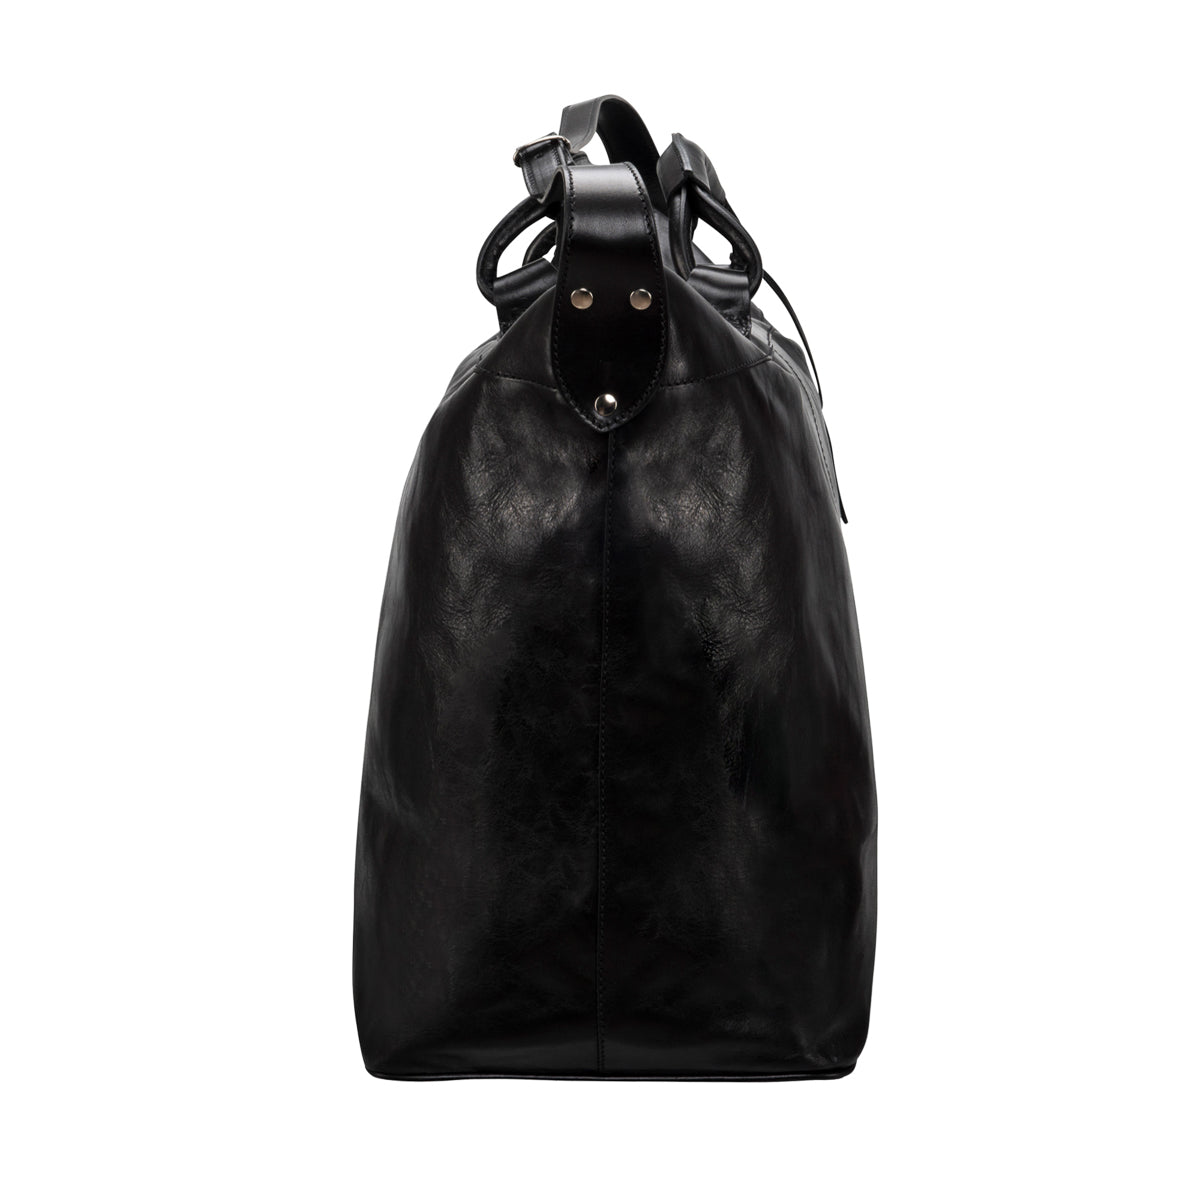 Image 3 of the 'Fabrizio' Black Veg-Tanned Leather Holdall